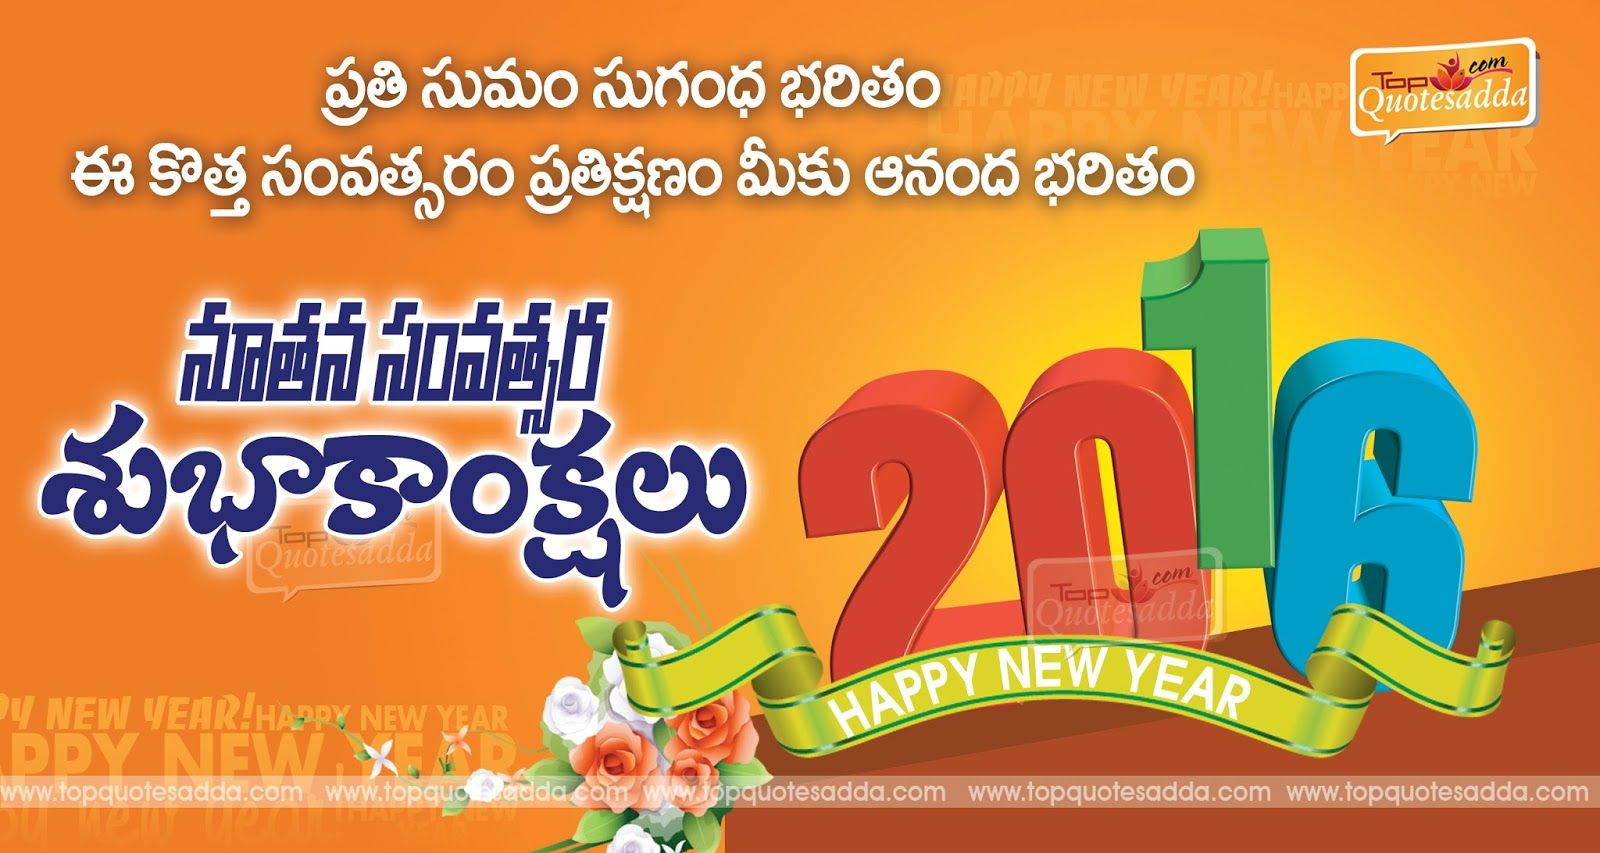 telugu 2016 nuthana samvastara subhakankshalu images 2016 happy new year wishes in telugu advance happy new year wallpapers in telugu language new telugu